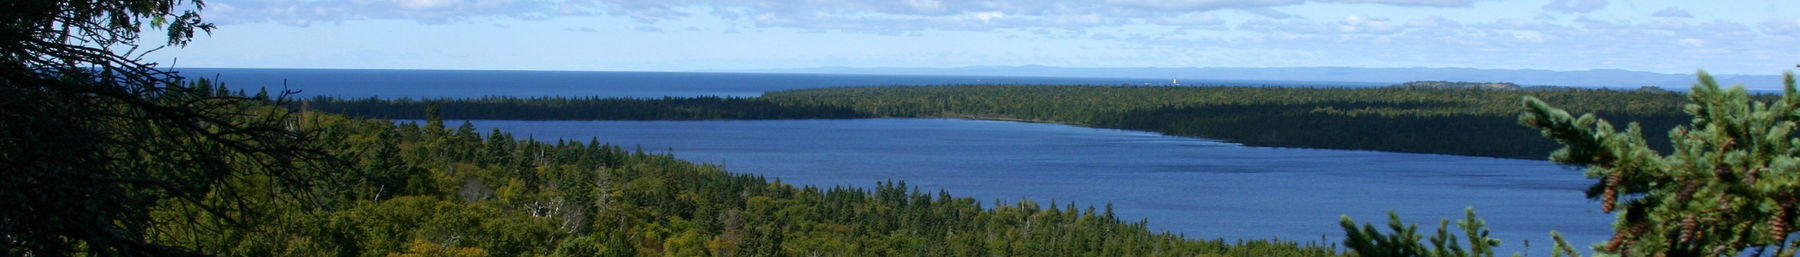 Isle Royale National Park-banner.jpg